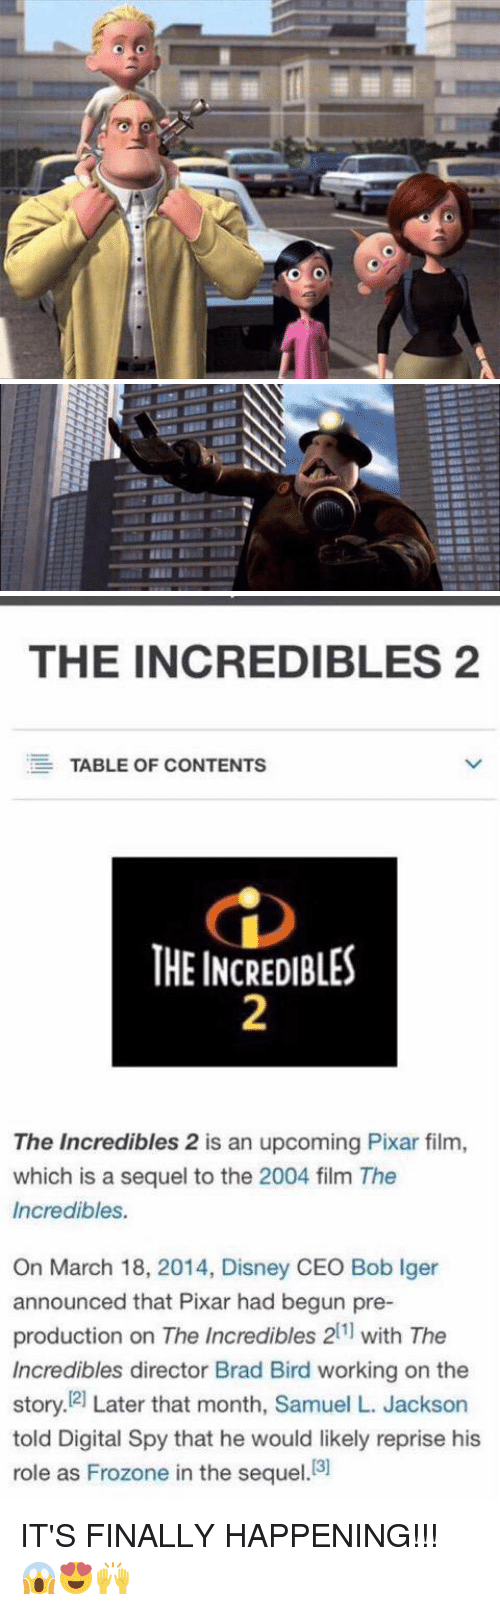 Frozone, Memes, and Pixar: TTF  THE Bure Mr   THE INCREDIBLES 2  EE TABLE OF CONTENTS  THE INCREDIBLES  The Incredibles 2 is an upcoming Pixar film,  which is a sequel to the 2004 film The  Incredibles.  On March 18, 2014, Disney CEO Bob lger  announced that Pixar had begun pre-  production on The Incredibles 211 with The  Incredibles director Brad Bird working on the  story. 21 Later that month, Samuel L. Jackson  told Digital Spy that he would likely reprise his  role as Frozone in the sequel  [3] IT'S FINALLY HAPPENING!!! 😱😍🙌